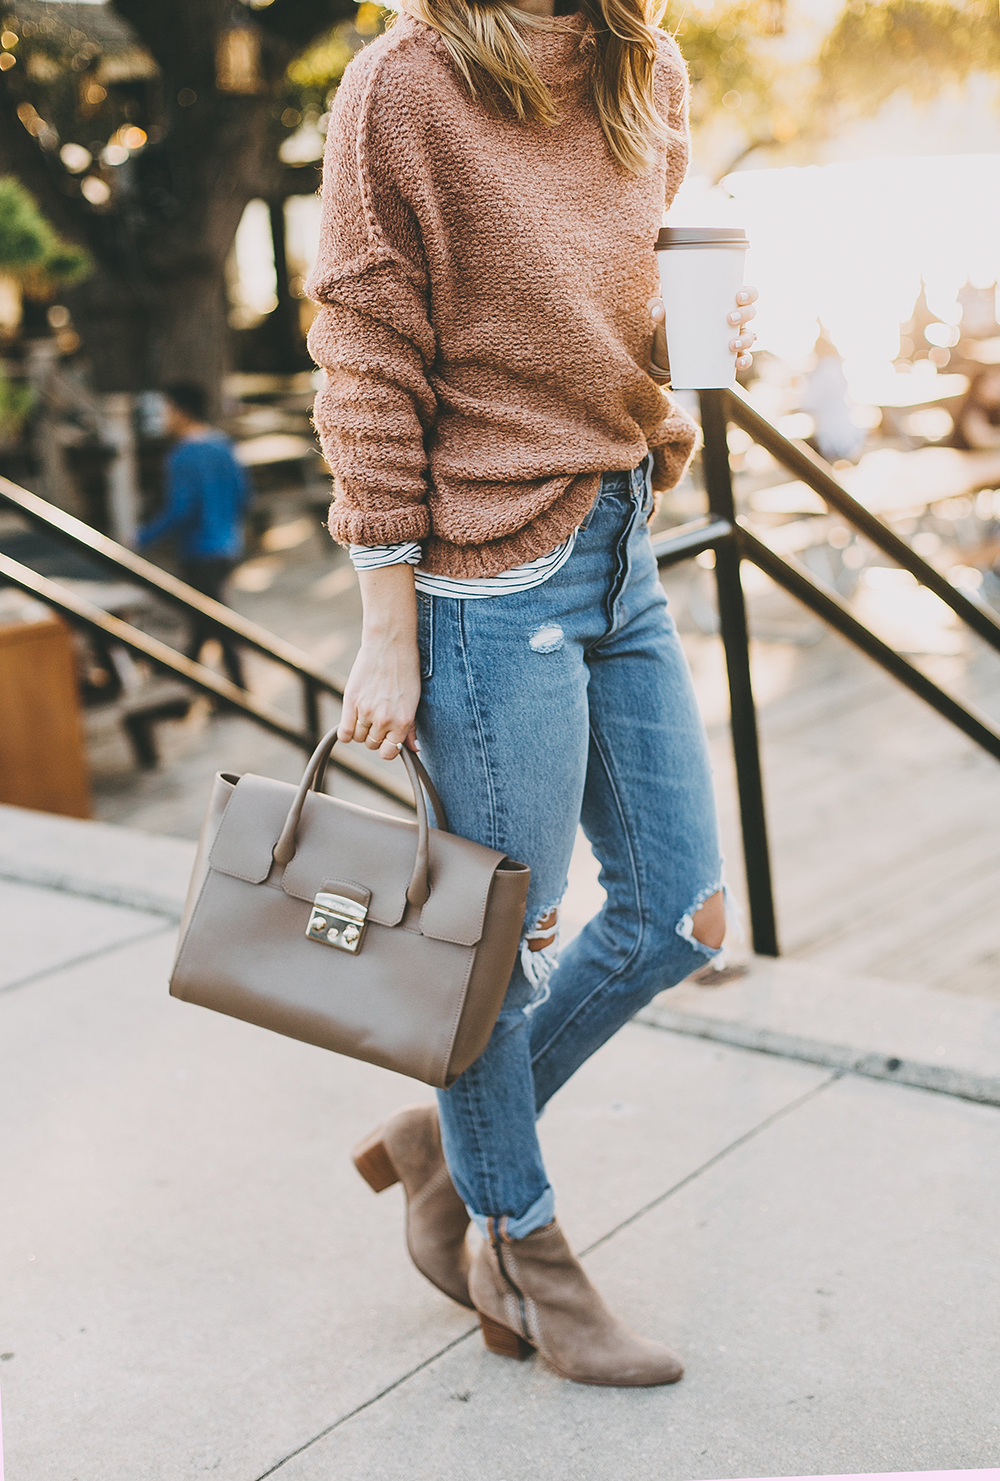 livvyland-blog-olivia-watson-mozarts-coffee-roasters-striped-tee-marsala-clay-chunky-knit-sweater-levis-501-jeans-outfit-2